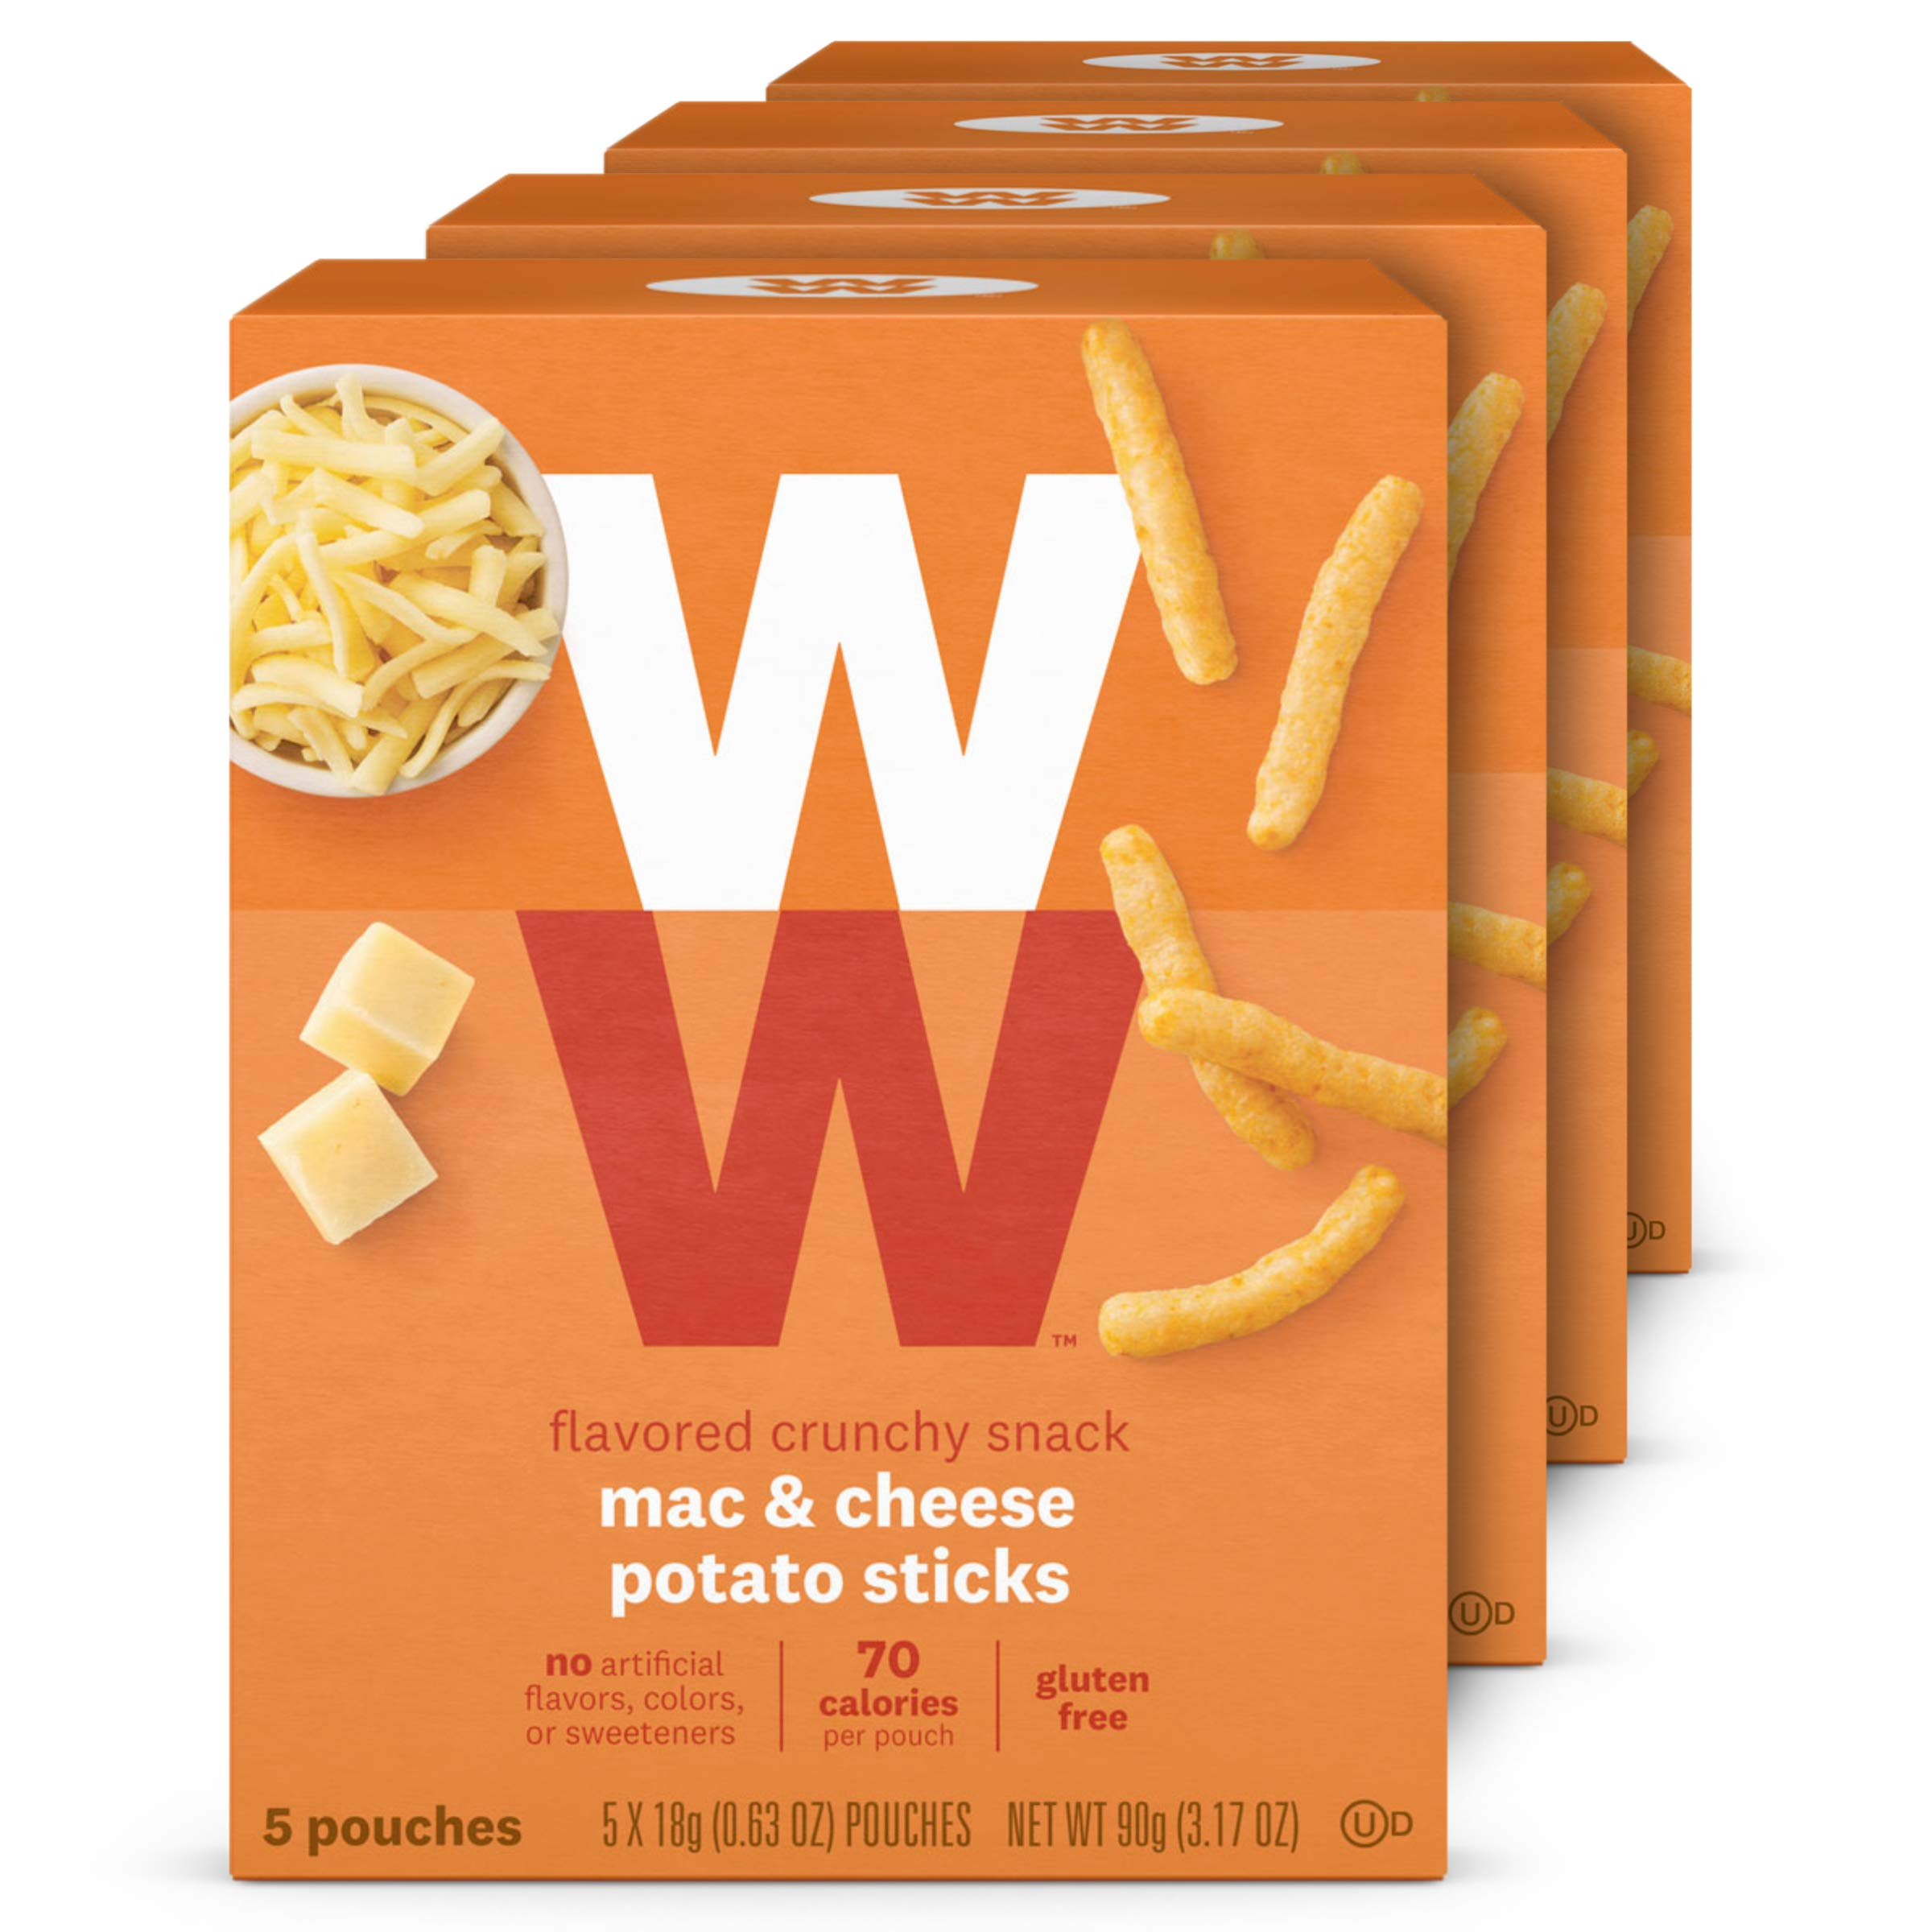 WW Mac & Cheese Potato Sticks - Gluten-free, 2 SmartPoints - 4 Boxes (20 Count Total) - Weight Watchers Reimagined by WW